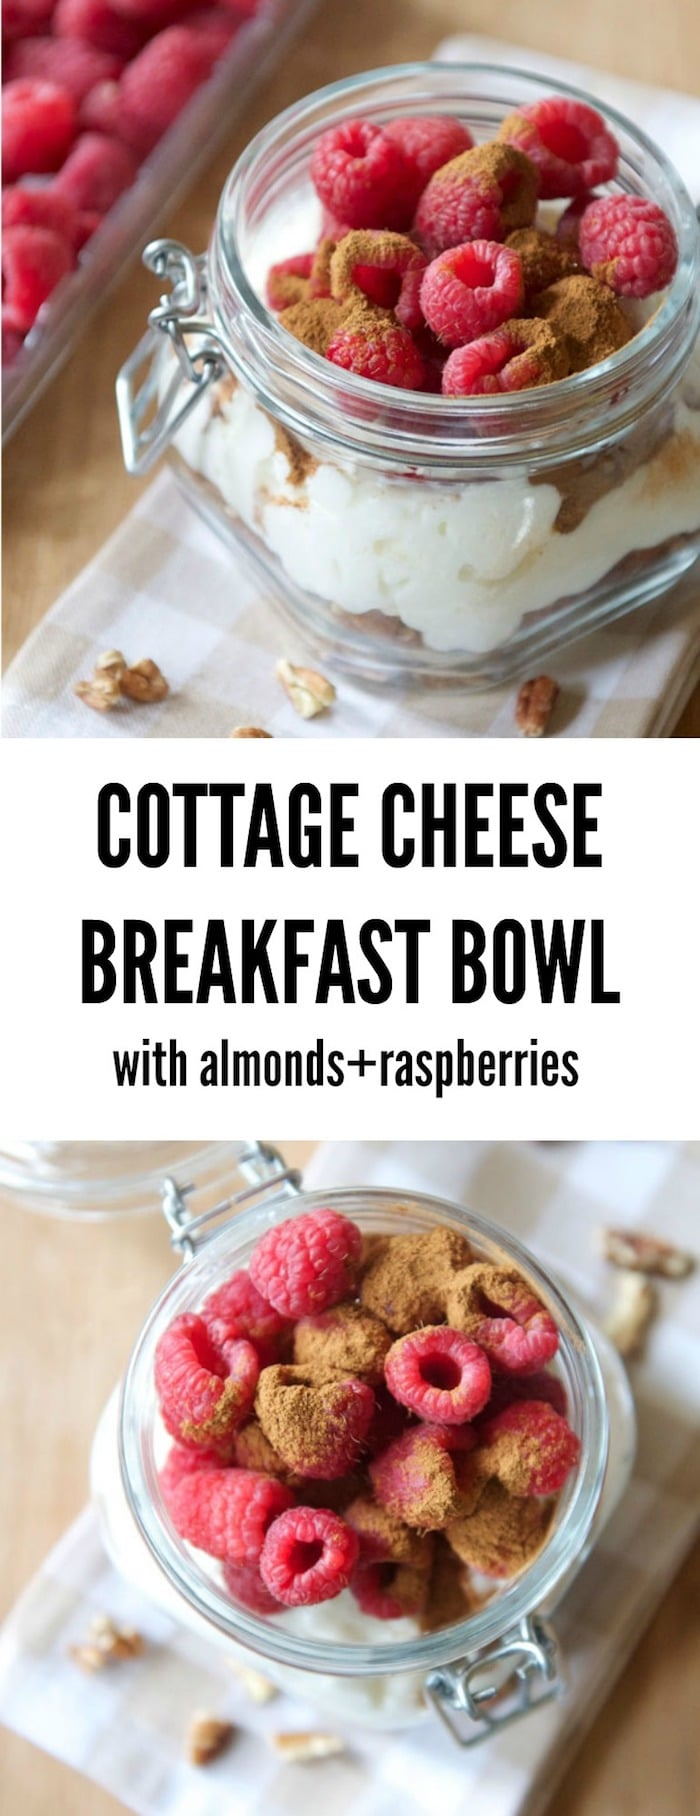 Cottage Cheese Breakfast Bowl made with almonds, walnuts and raspberries   thealmondeater.com